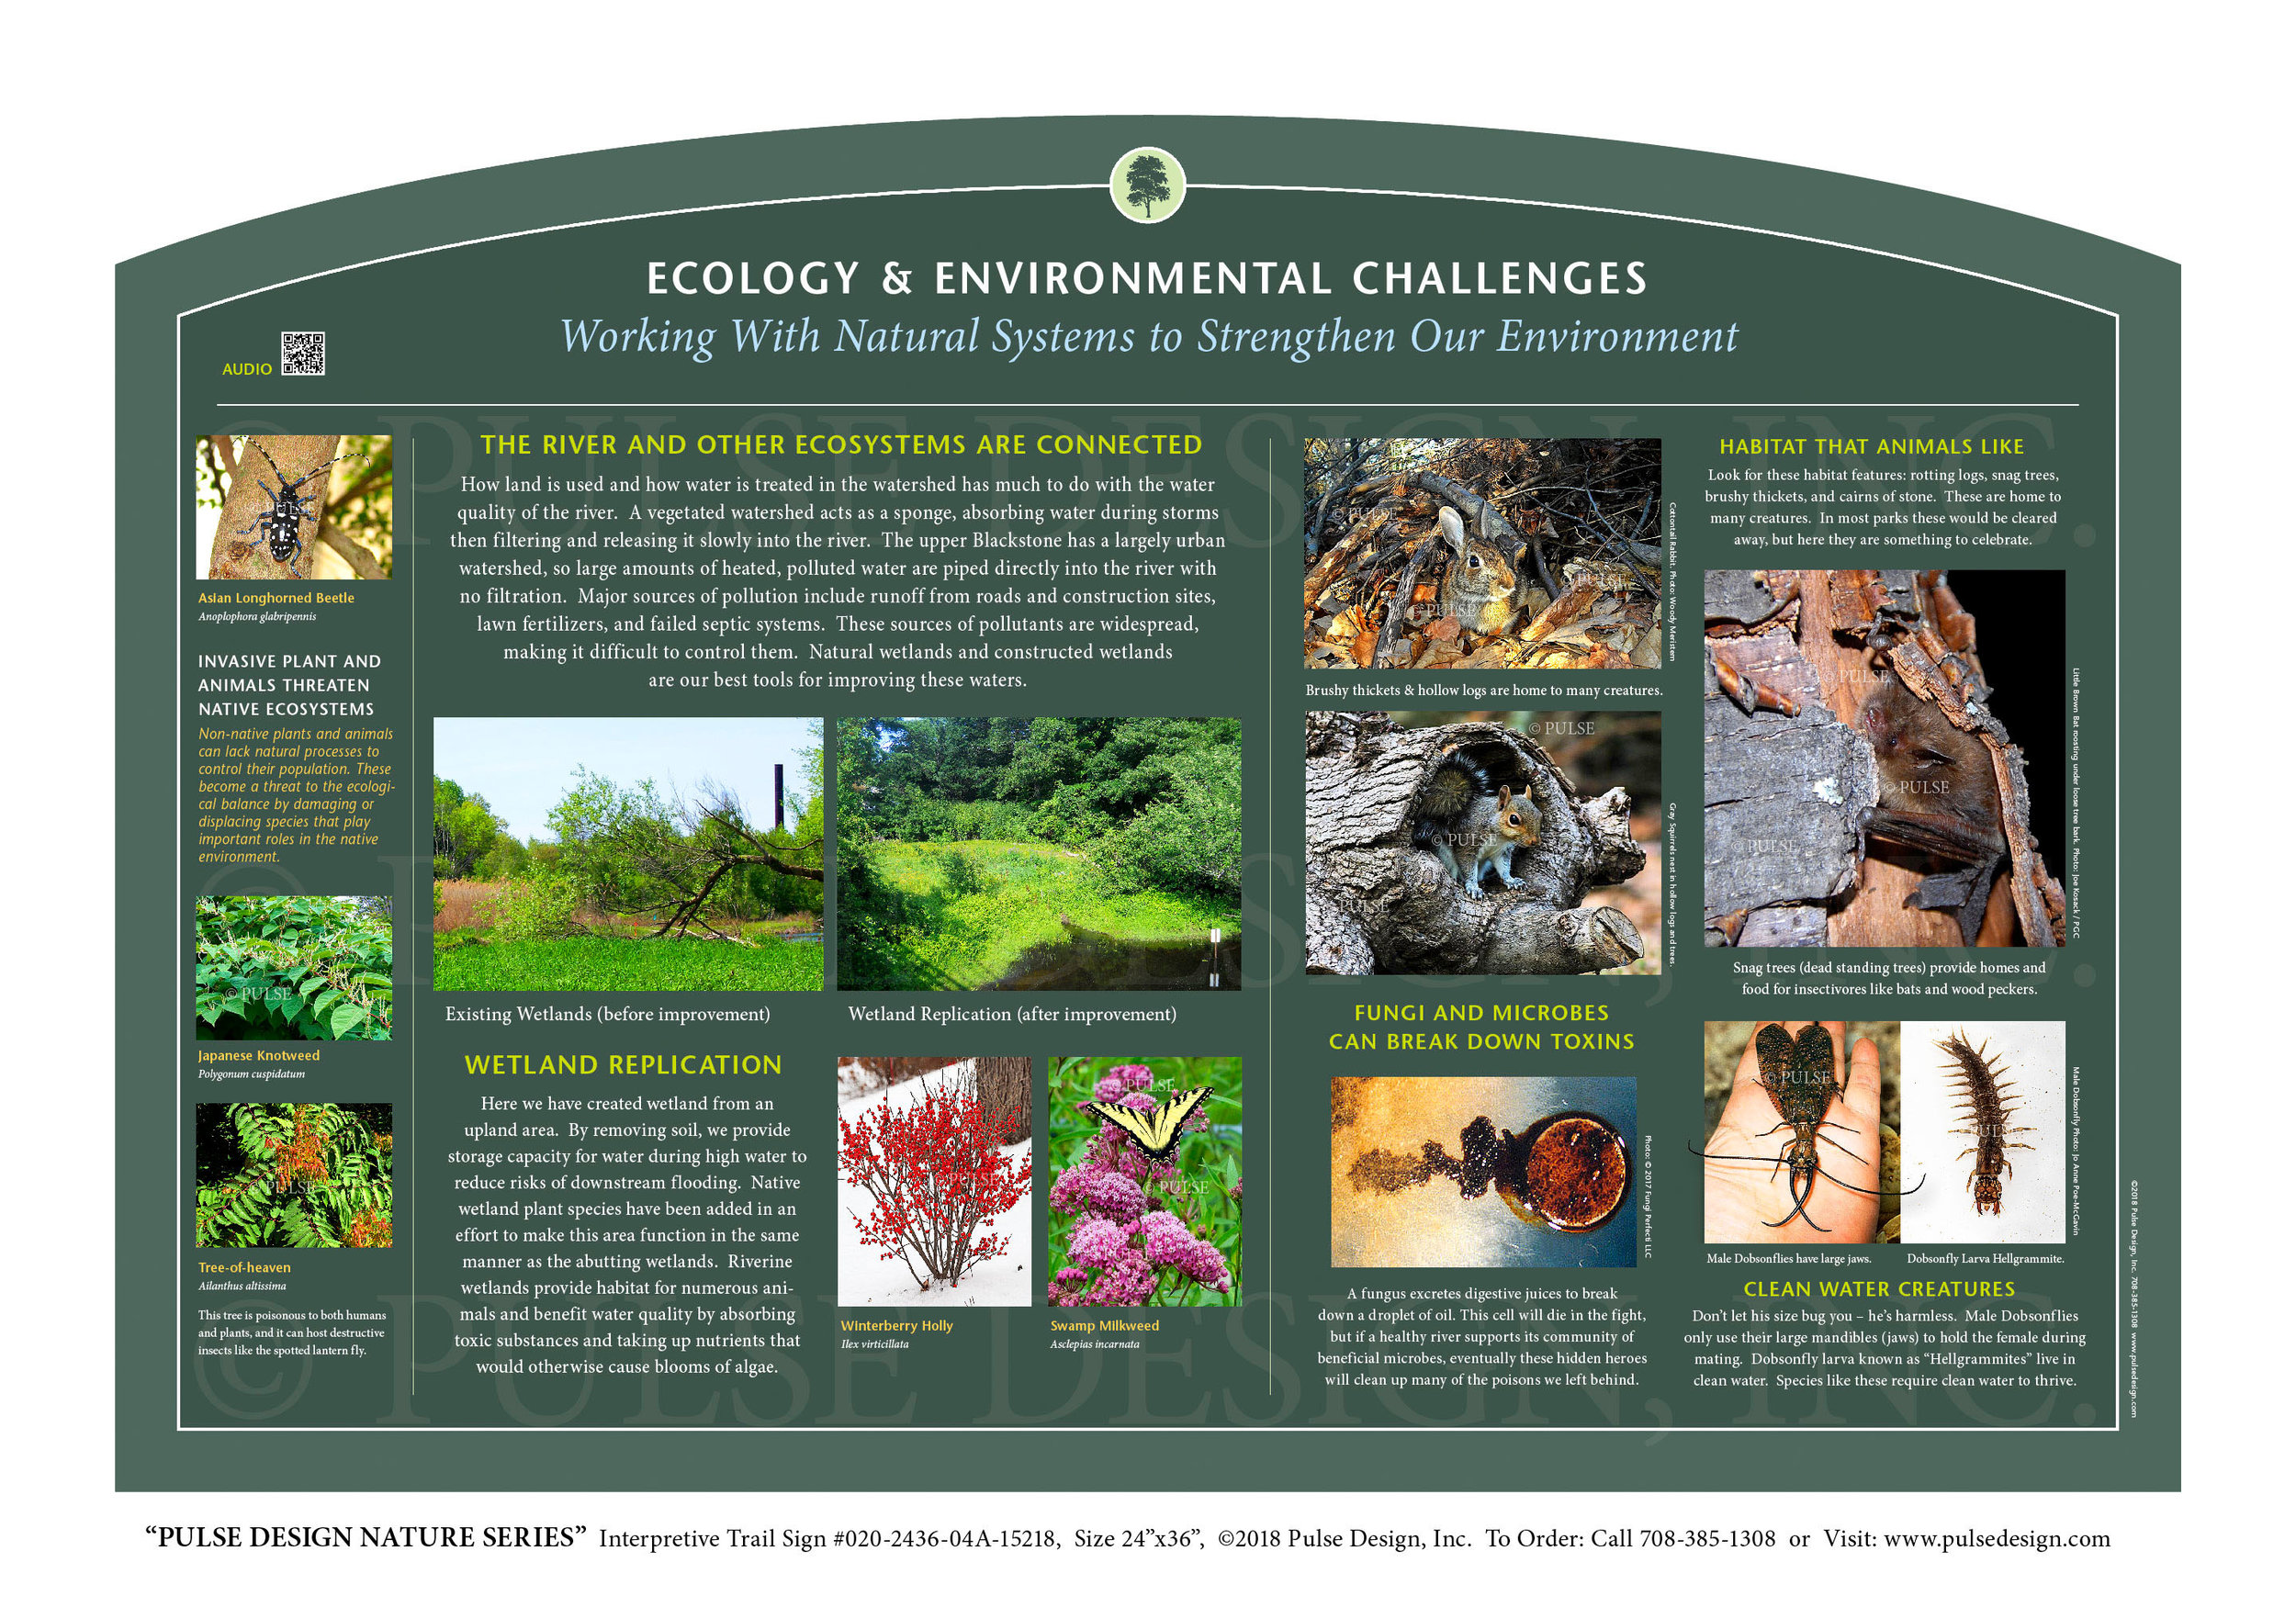 """Pulse Design provides Outdoor Interpretive Nature Trail Signs, Environmental Education Exhibits, Graphic Display Panels,Wayfinding Signage and Monuments, focused on Wildlife and Habitat throughout the United States. The  PULSE DESIGN NATURE SERIES is a beautiful, """"Ready-to-Order"""" and """"Customizable"""" series of interpretive trail signs that cover many common nature subjects. See more signs from our  WATER & WETLAND HABITAT SERIES ."""